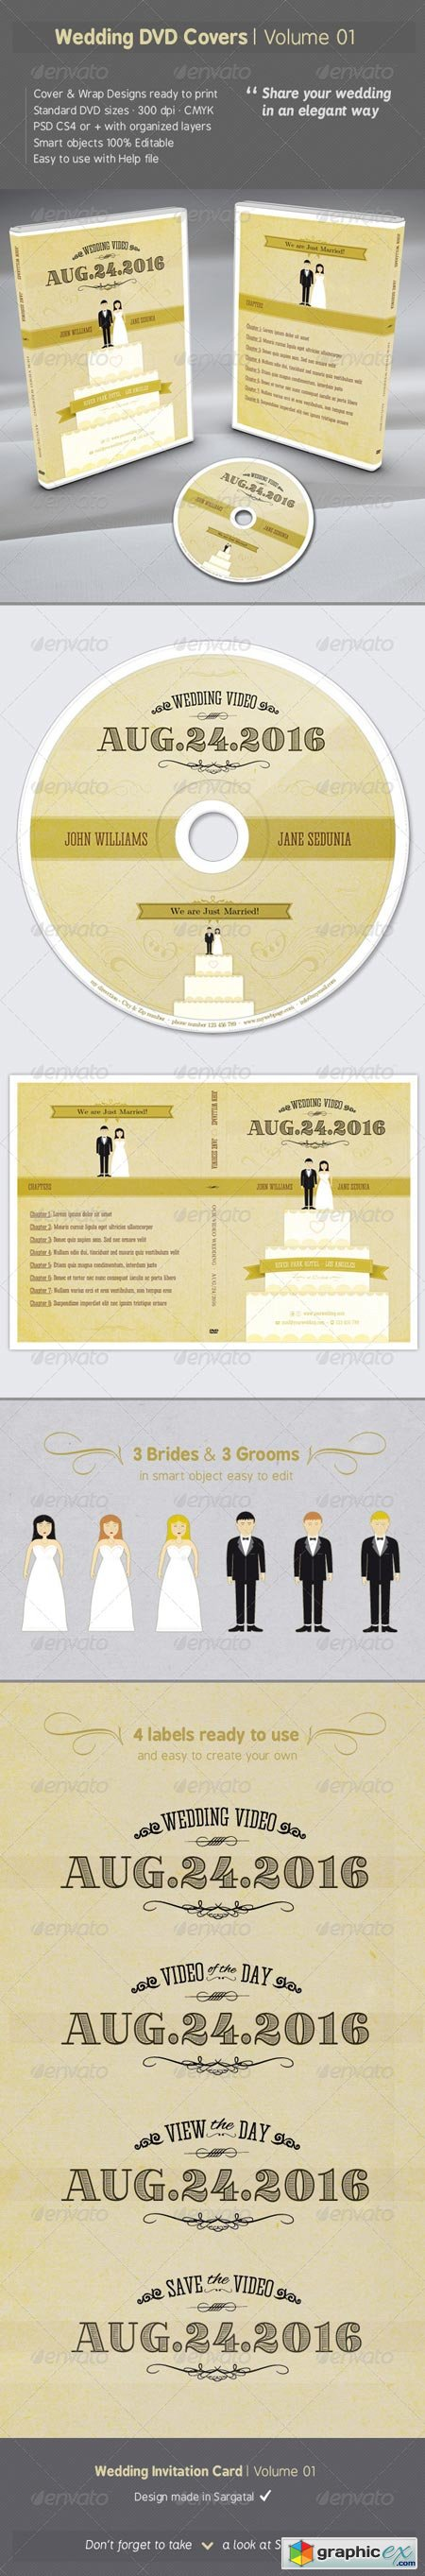 Wedding DVD Covers - Volume 01 6680570